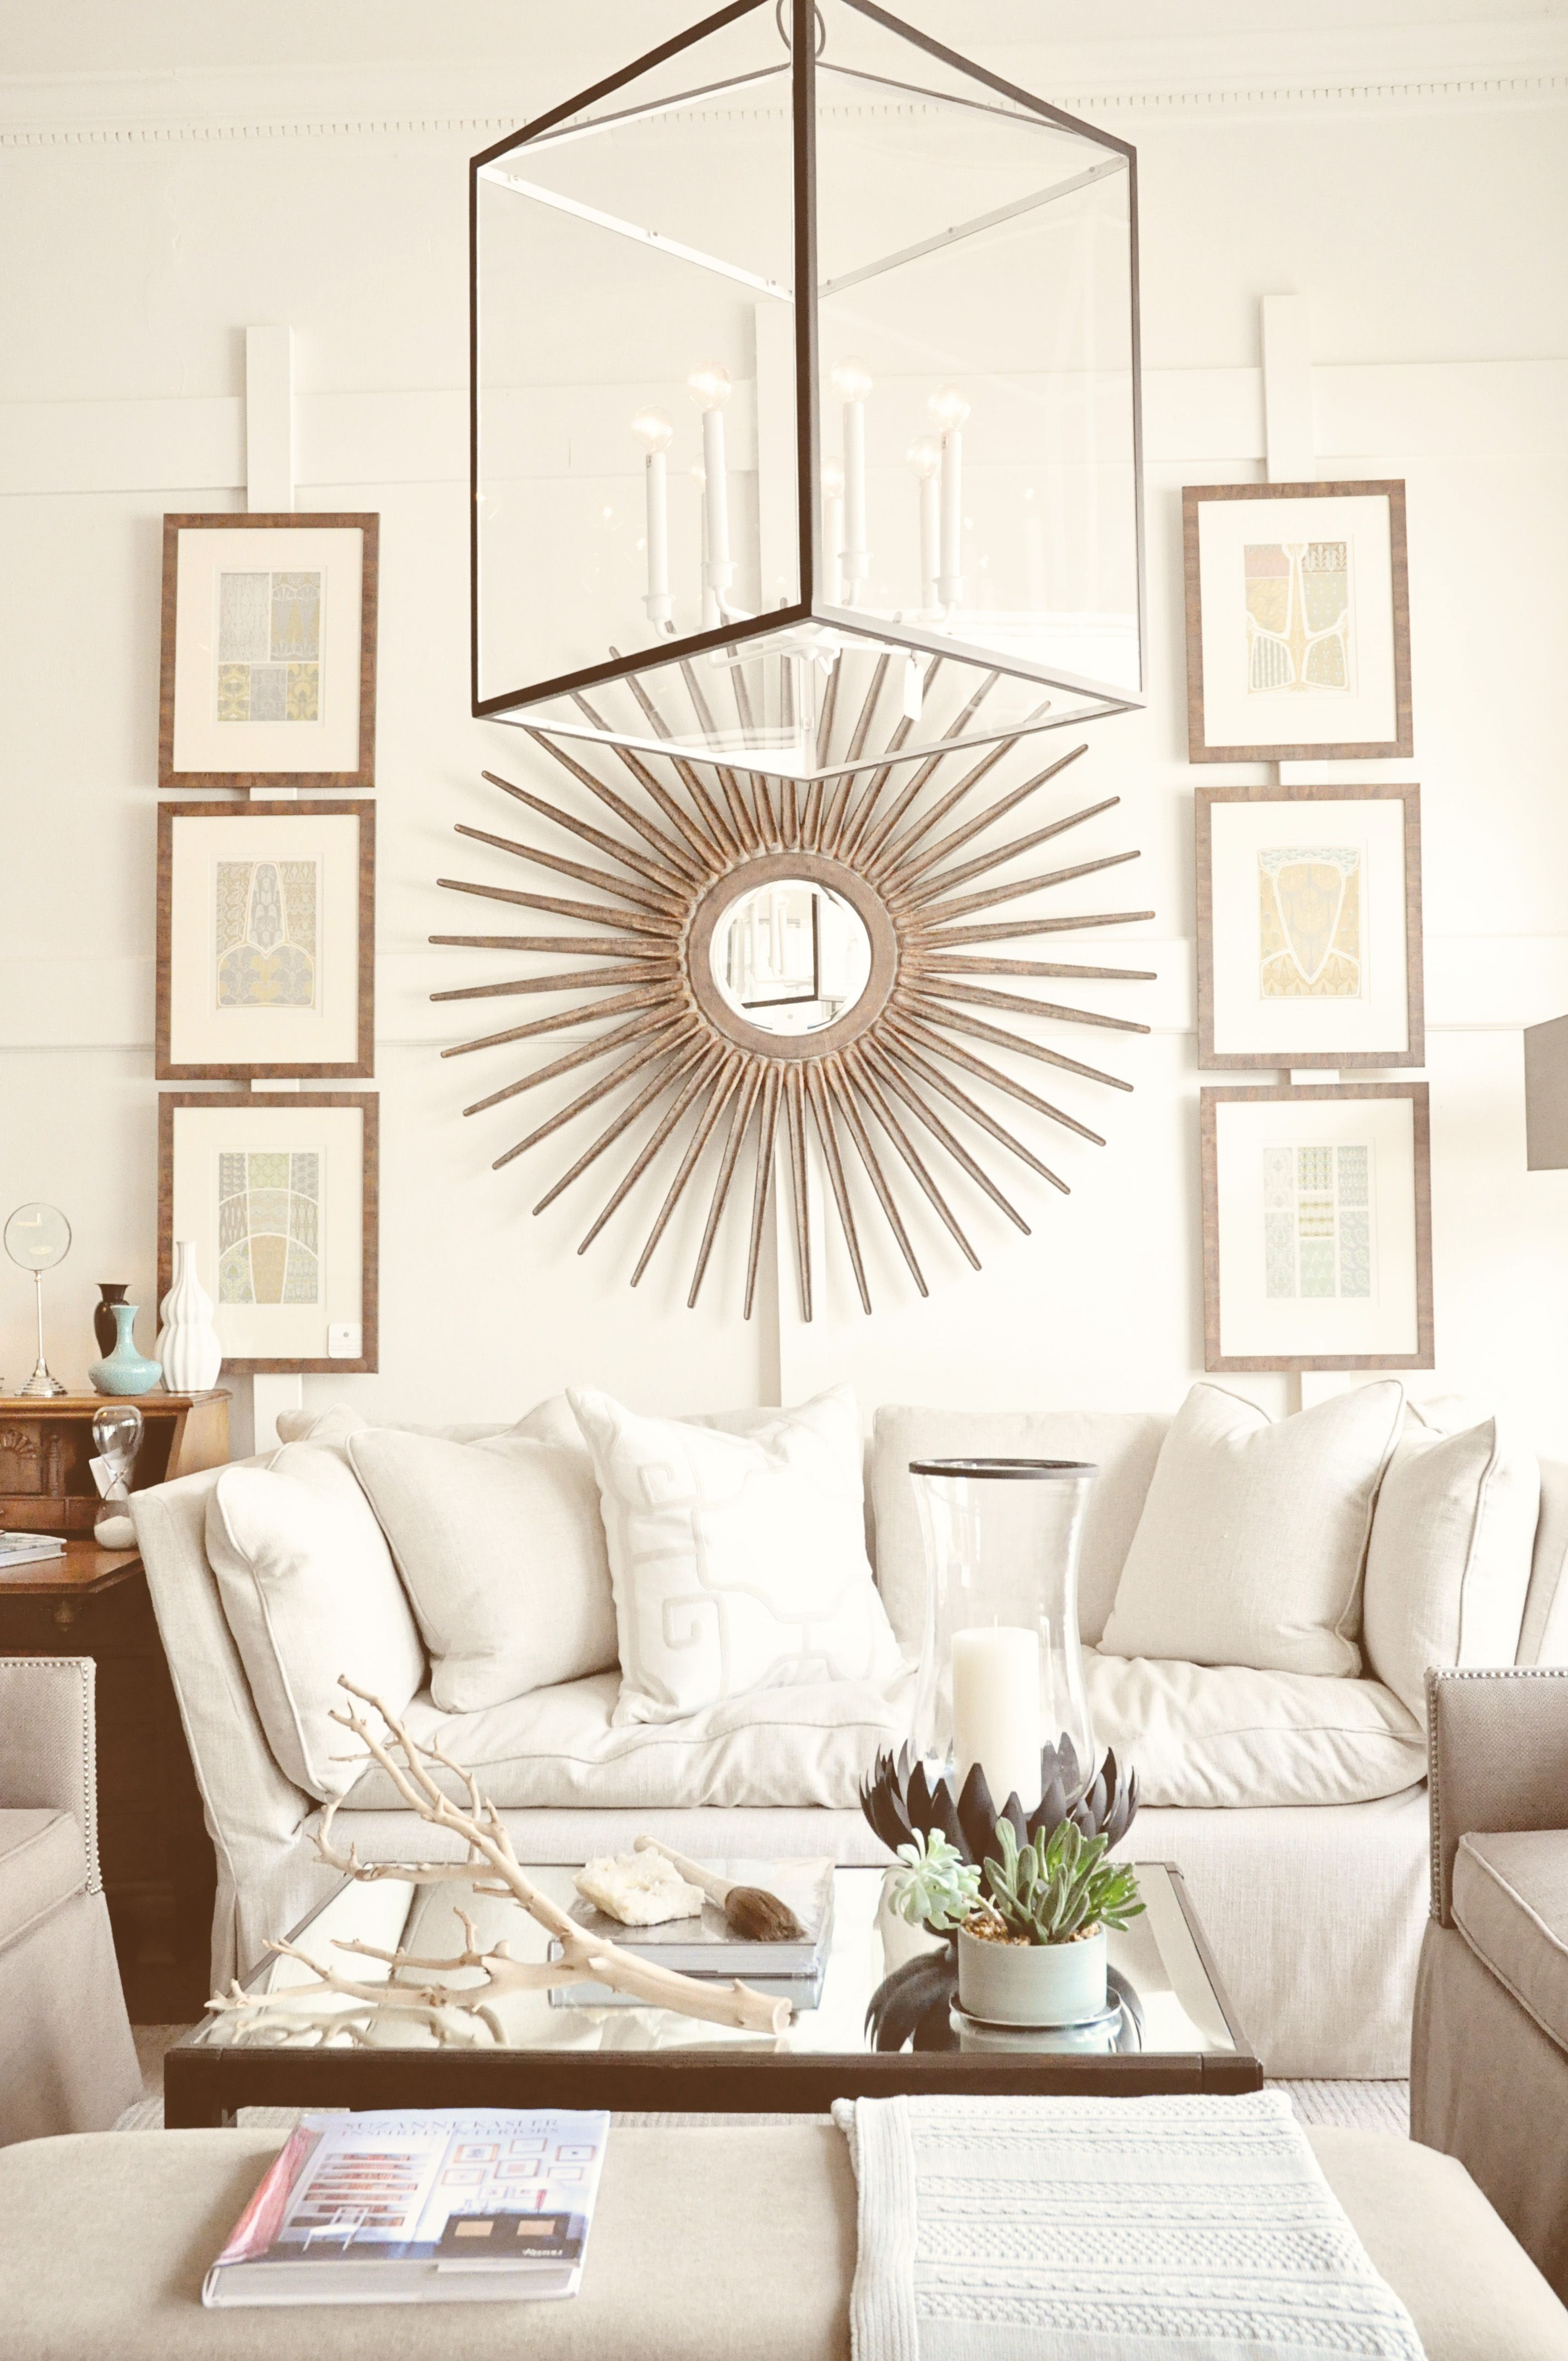 Living Rooms · Round Mirror With Art On Either Side